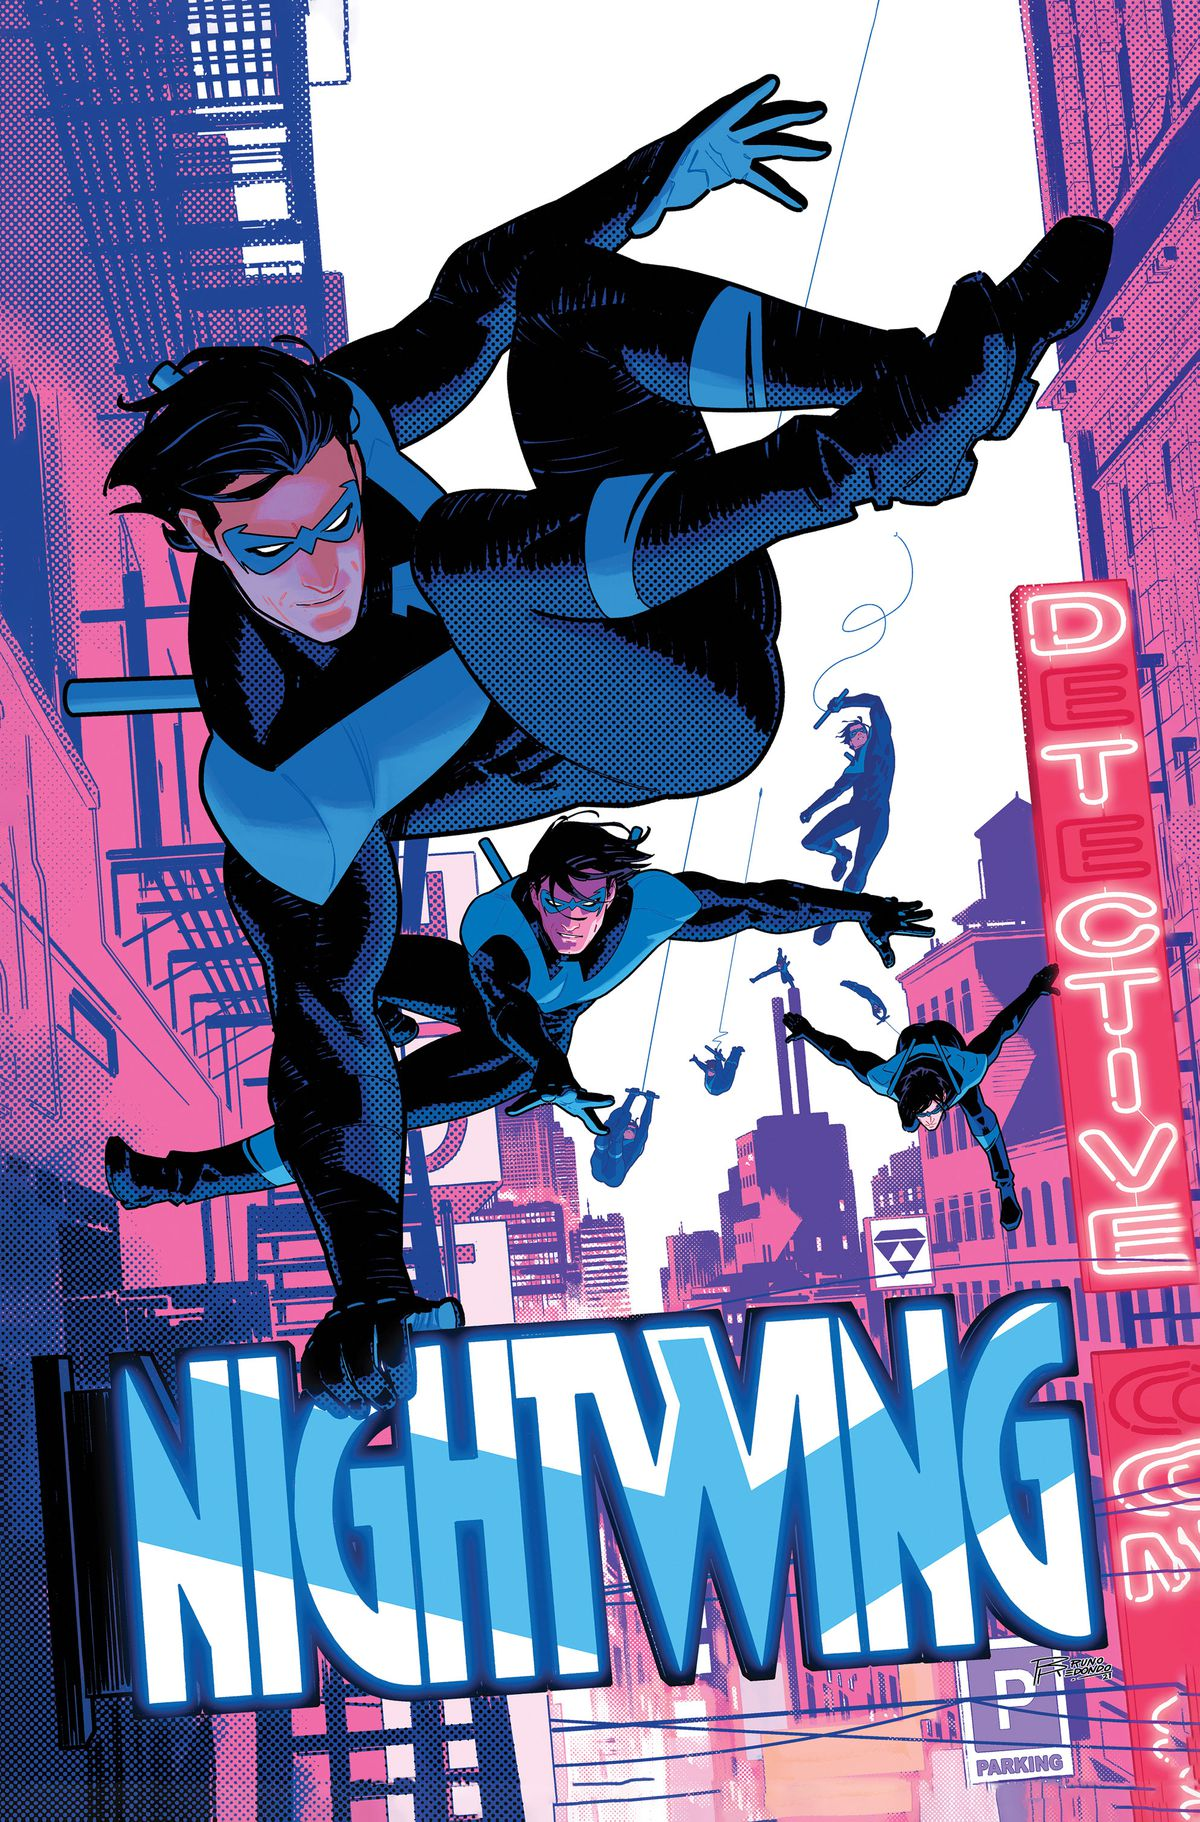 Nightwing vaults through the air over a cityscape on the cover of Nightwing #87 (2021).